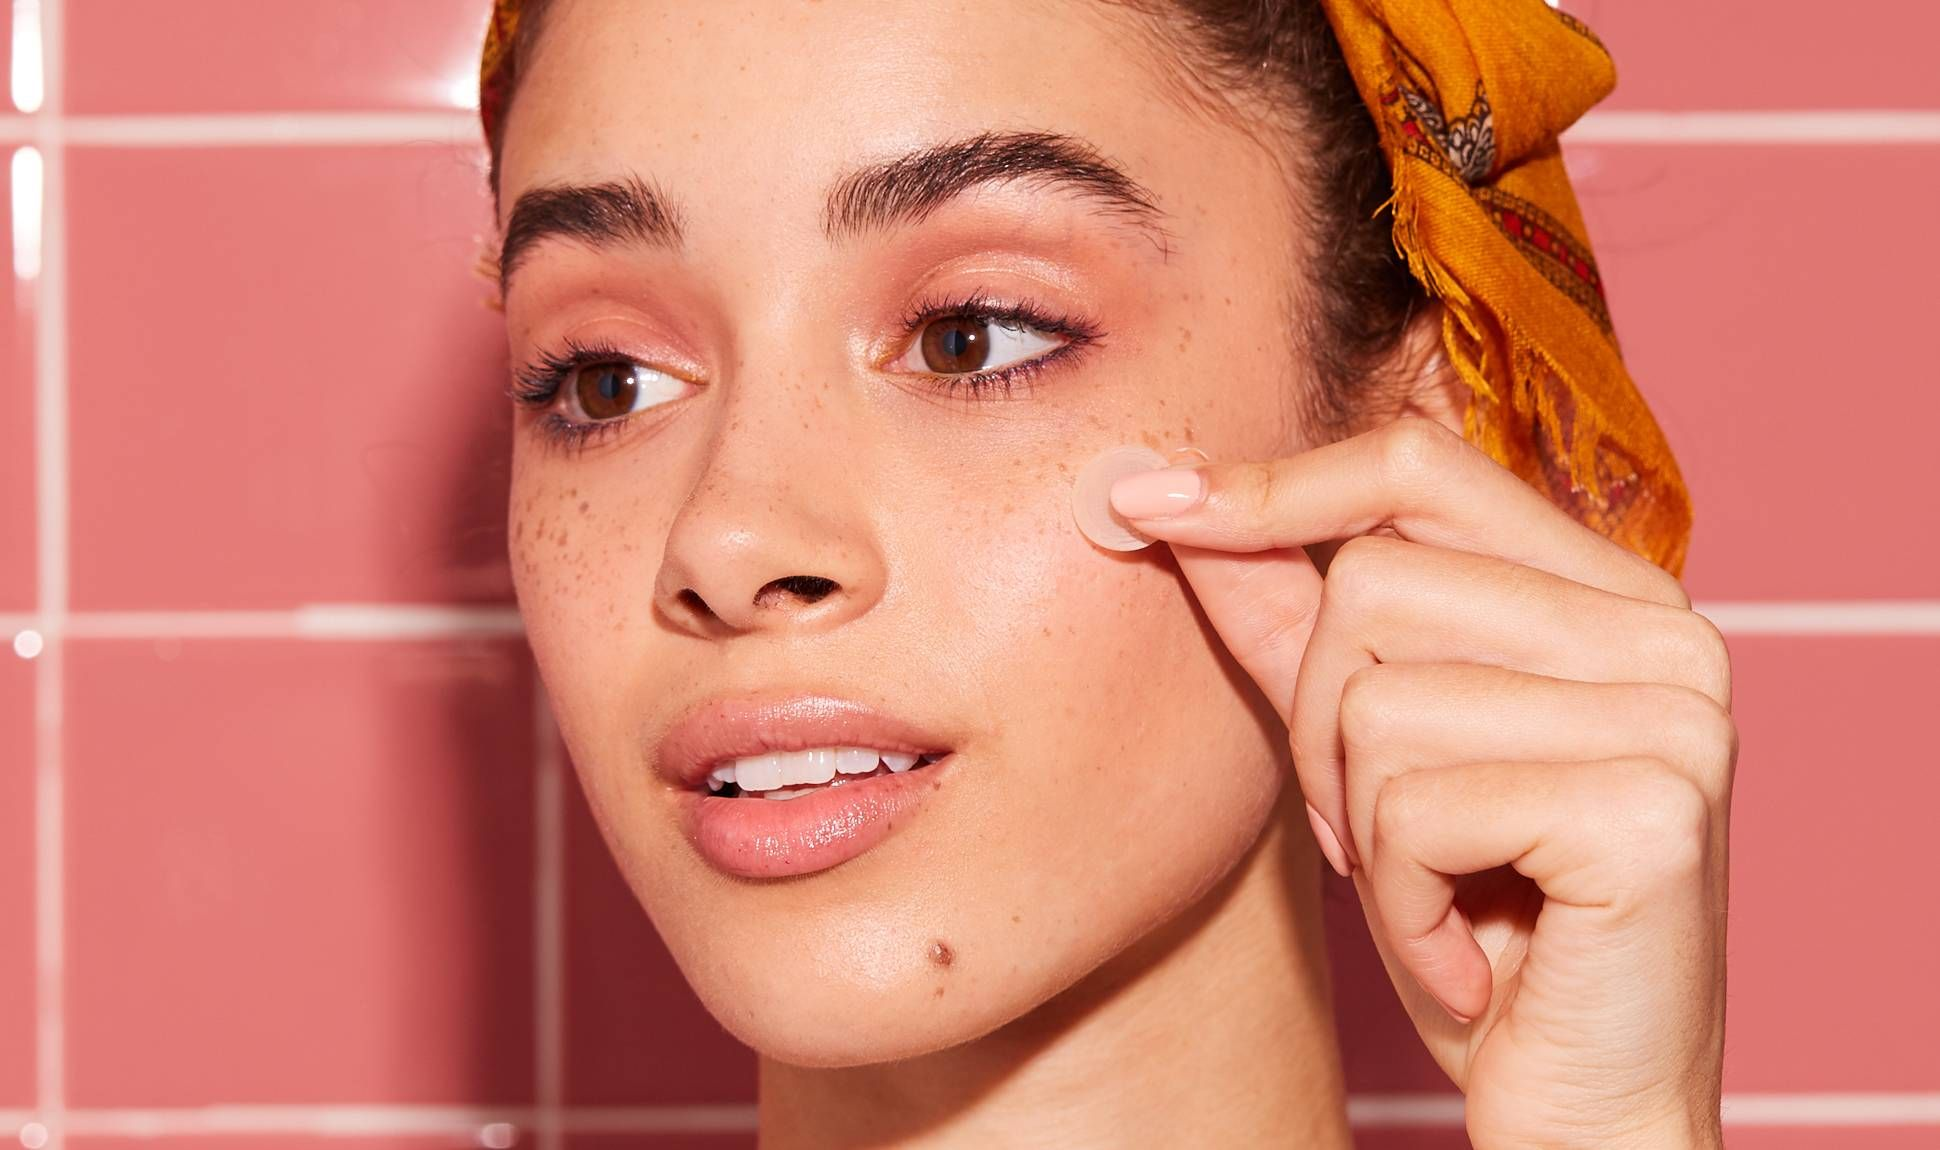 pimple patch to get rid of pimple fast | MorningKo.